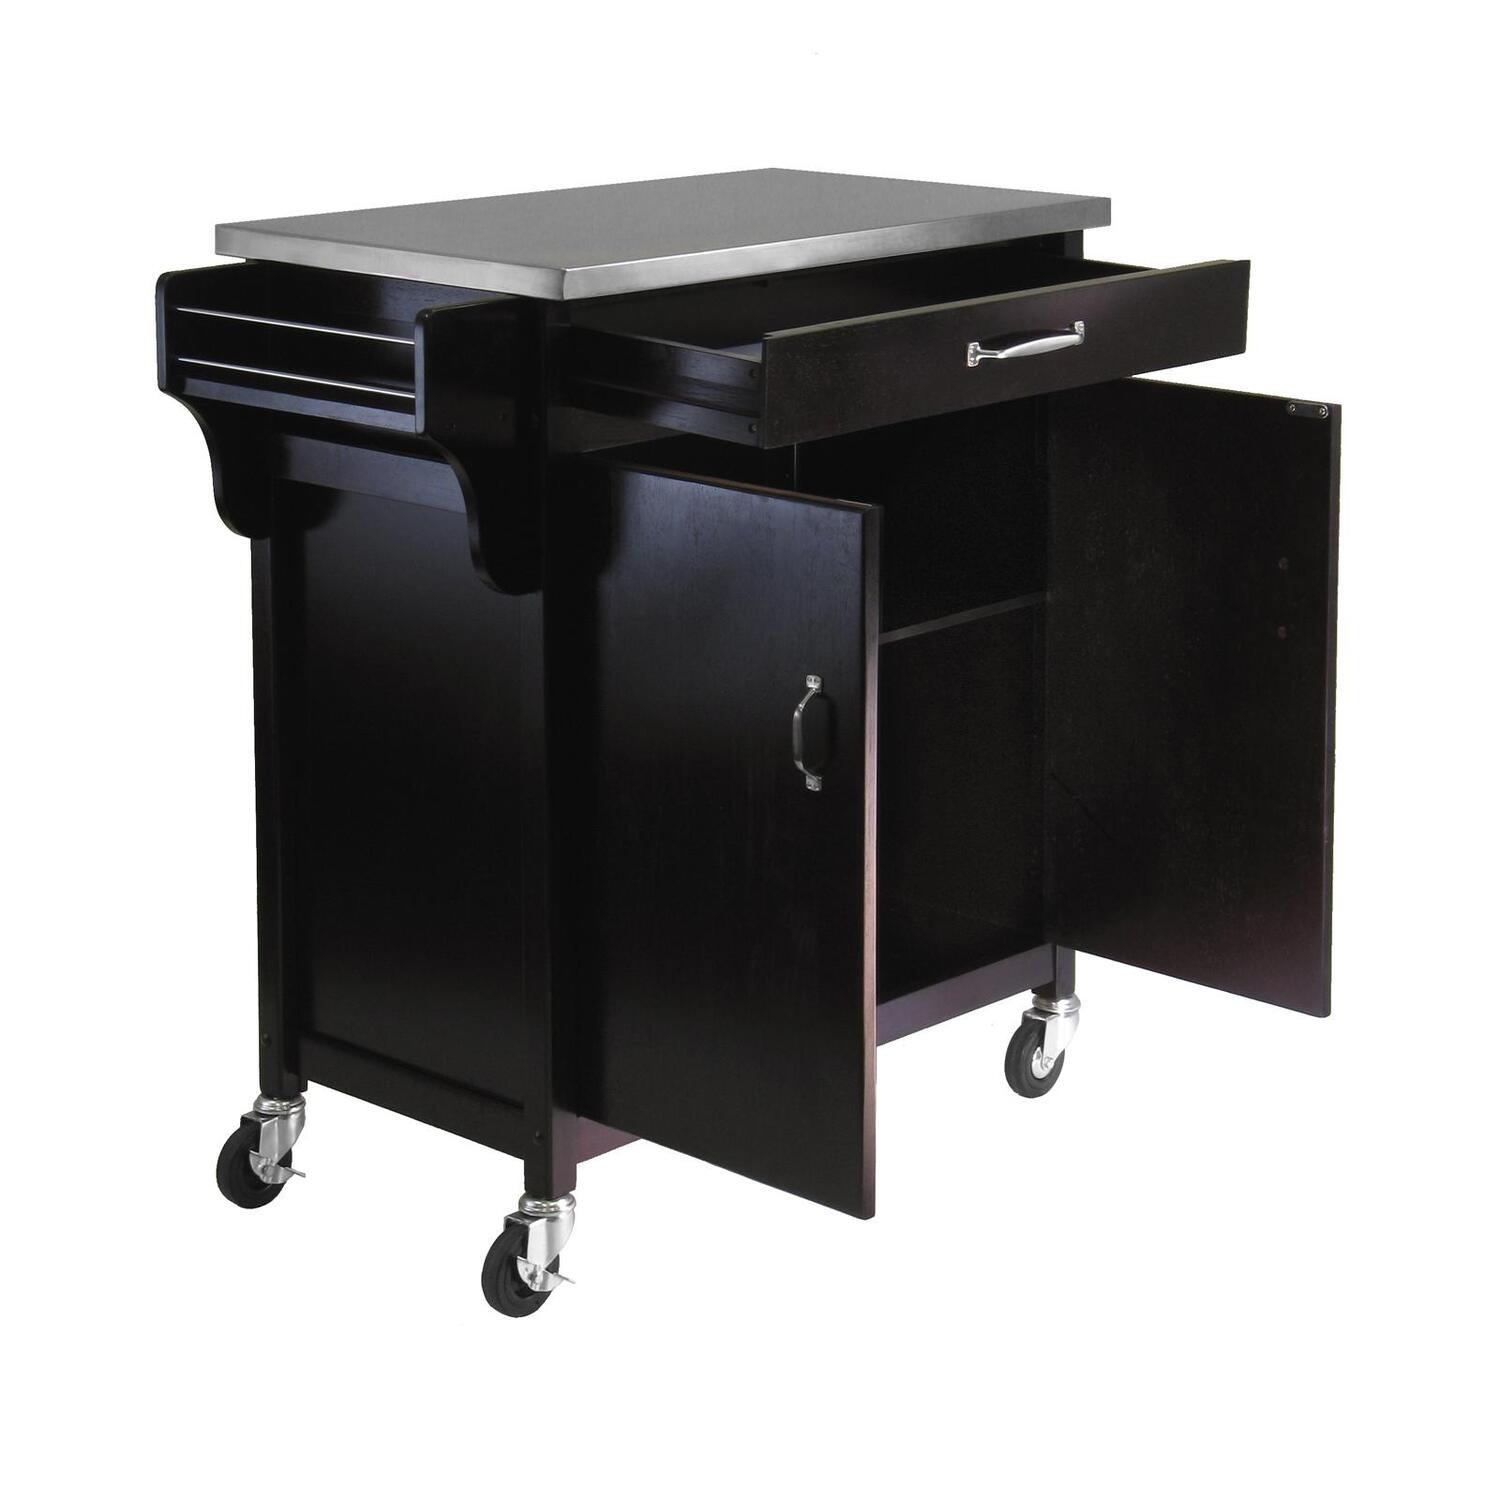 Winsome Stainless Steel Kitchen Cart by OJ merce